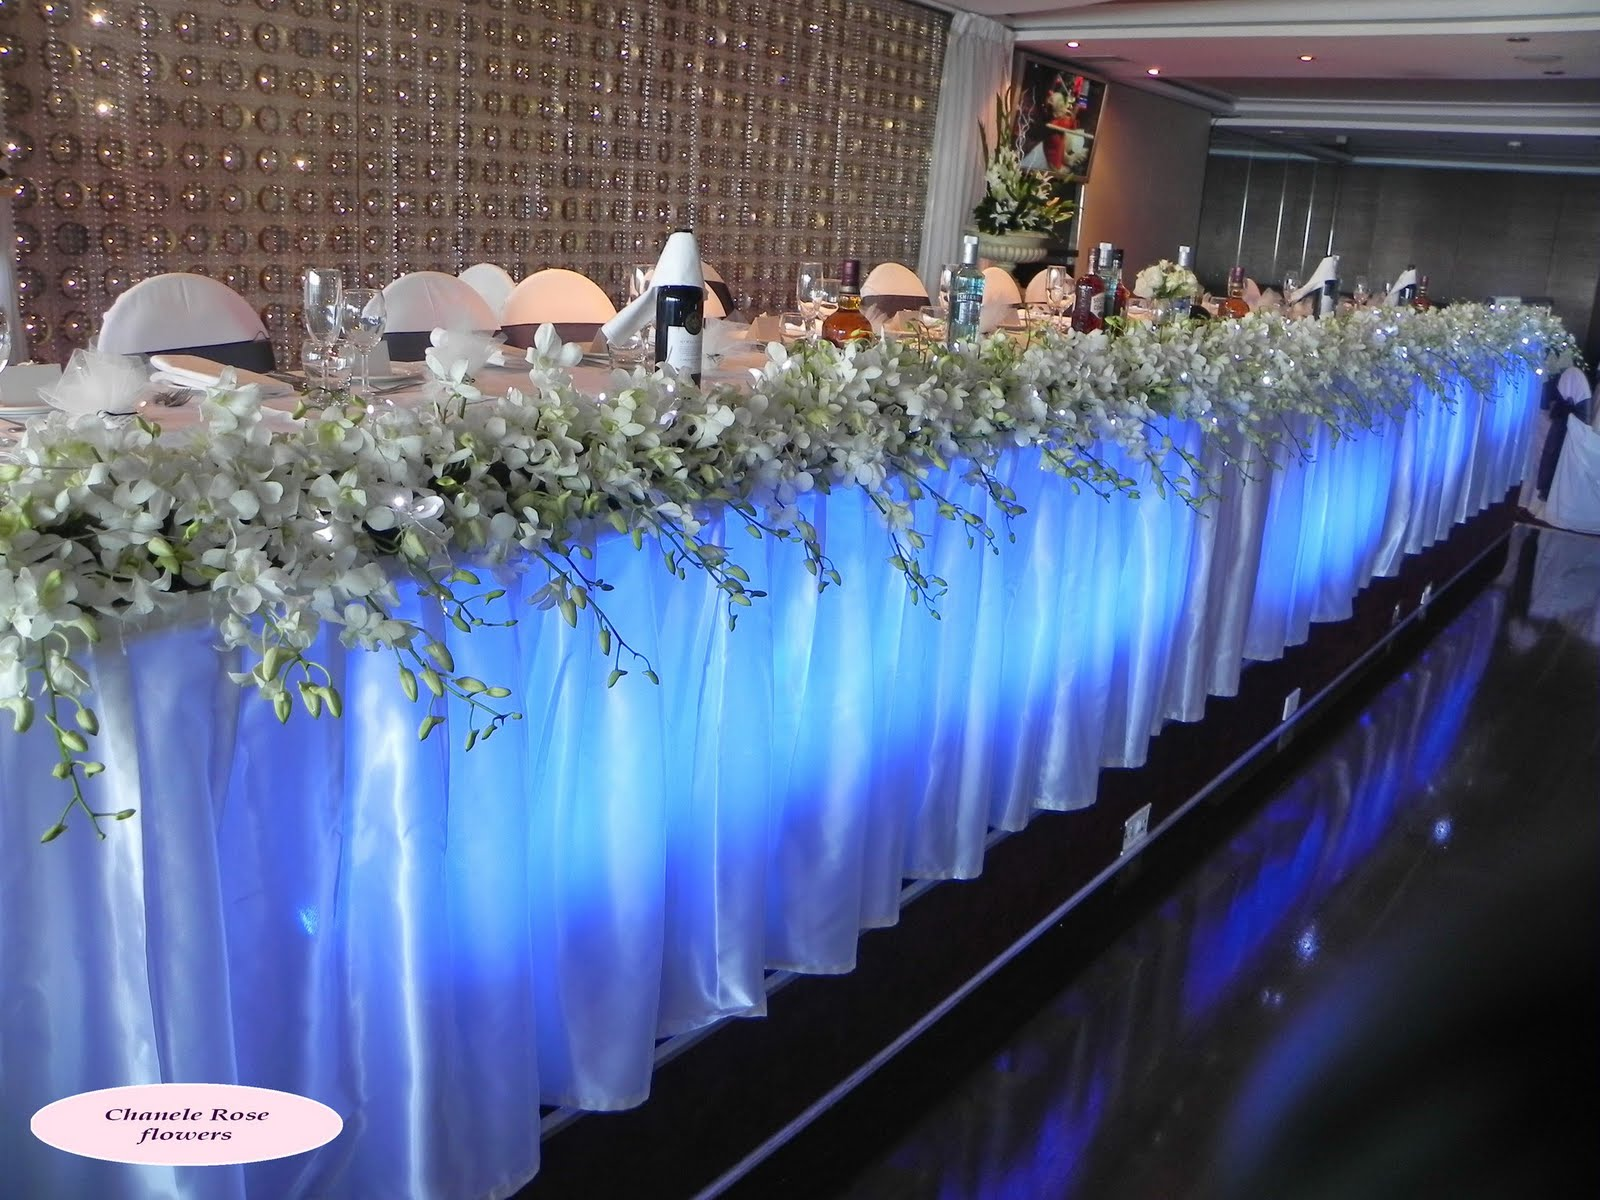 floral elegant table bridal wedding arrangement of flower hanging runner decor decorations